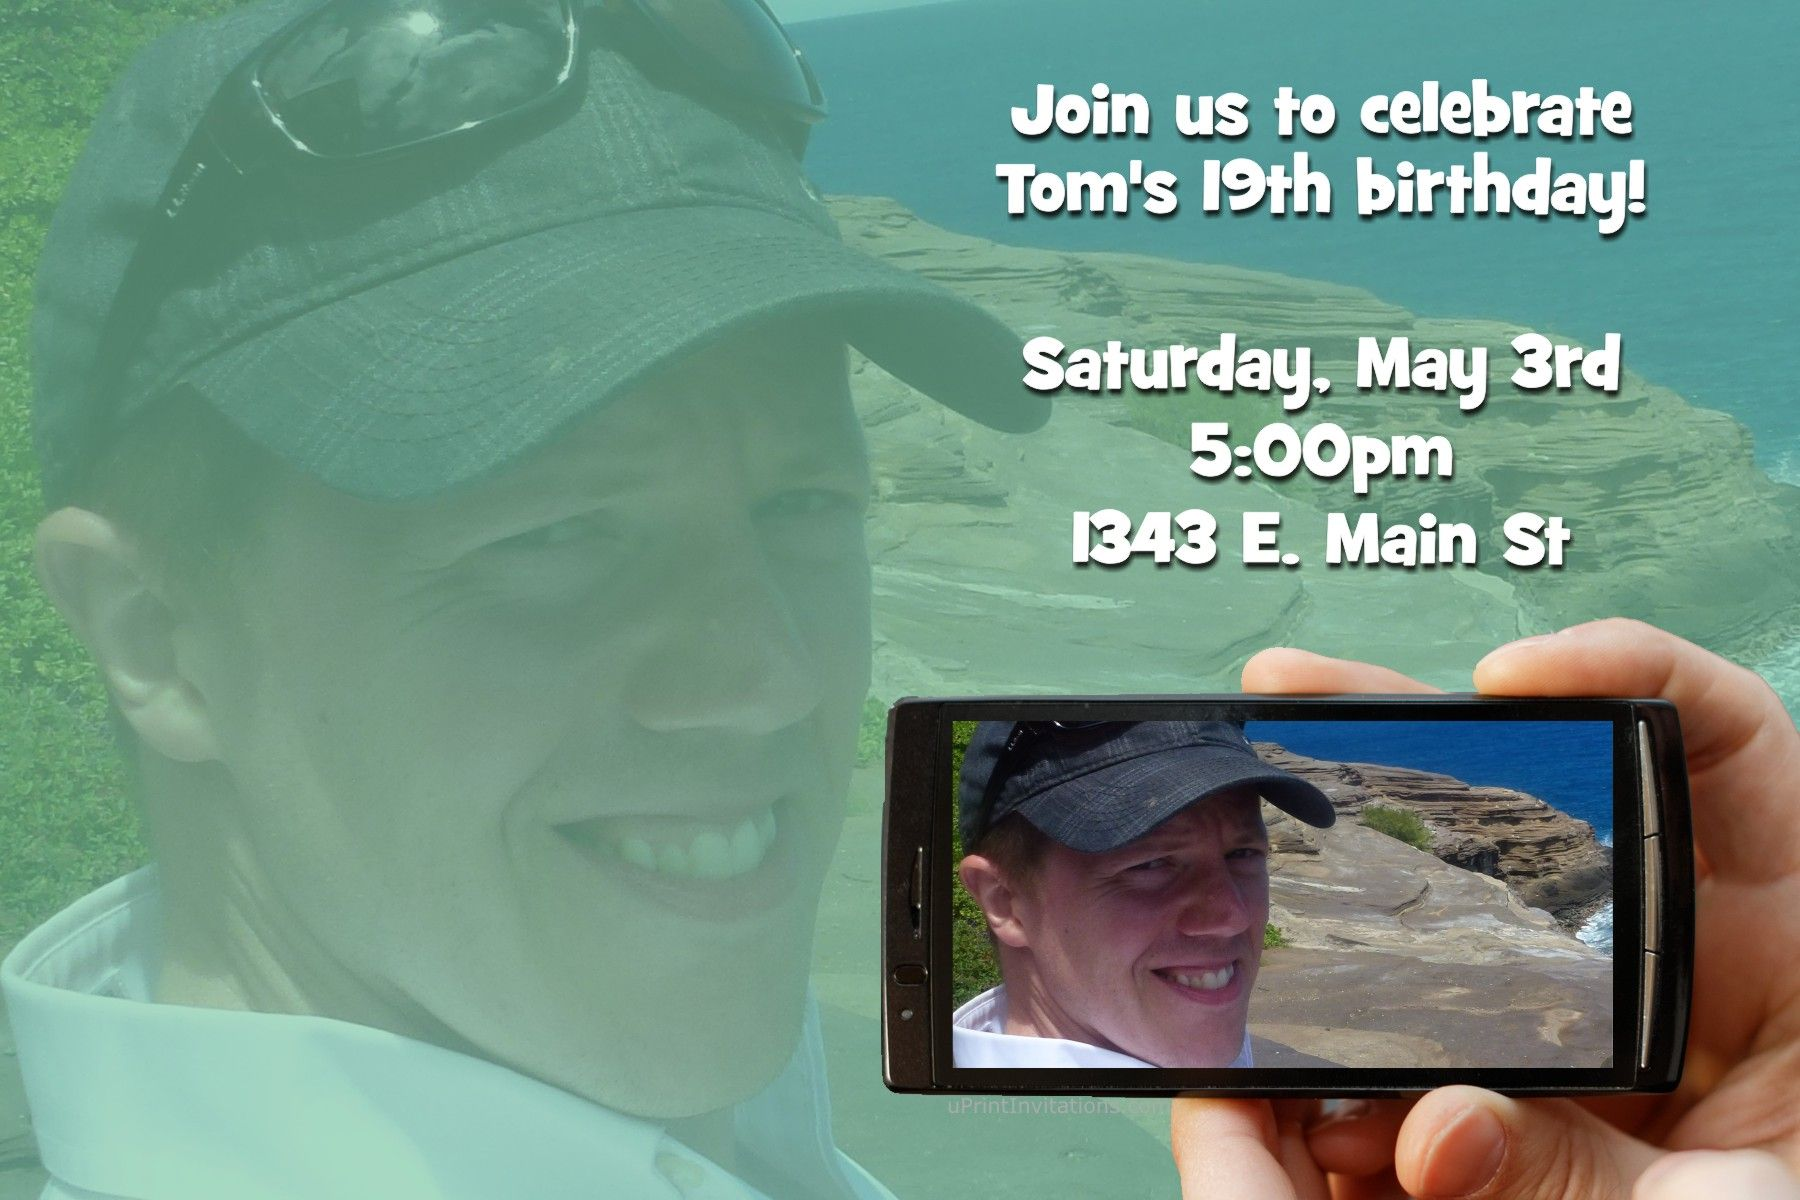 Coloring online no printing - Selfie Birthday Invitations Any Color Scheme Get These Invitations Right Now Design Yourself Online